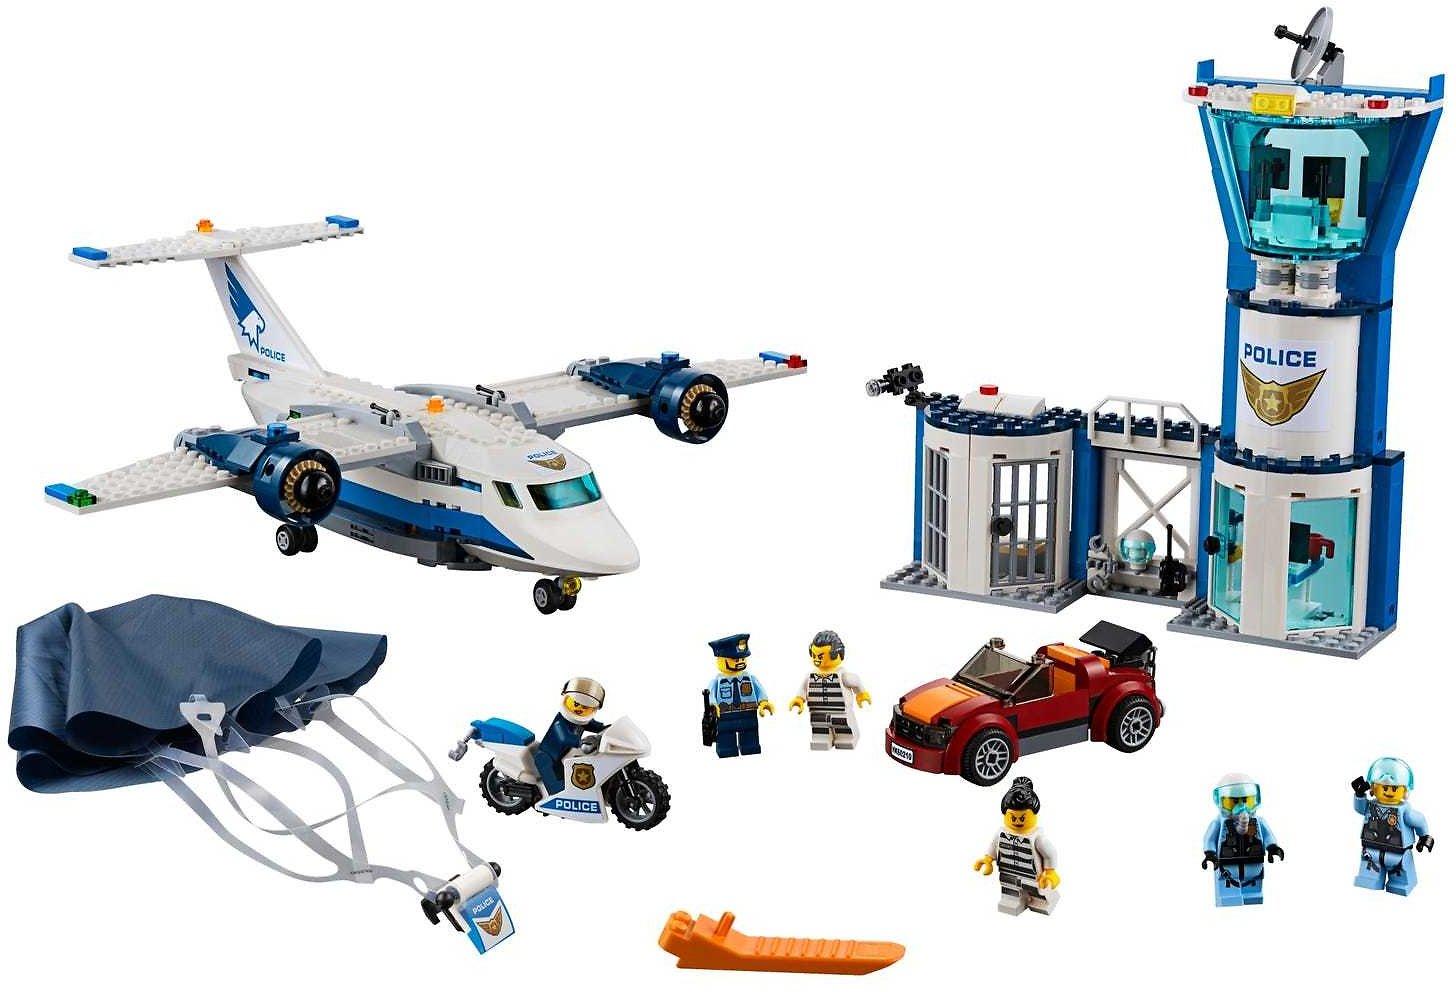 Sky Police Air Base 60210 | City | Buy Online At The Official LEGO® Shop US